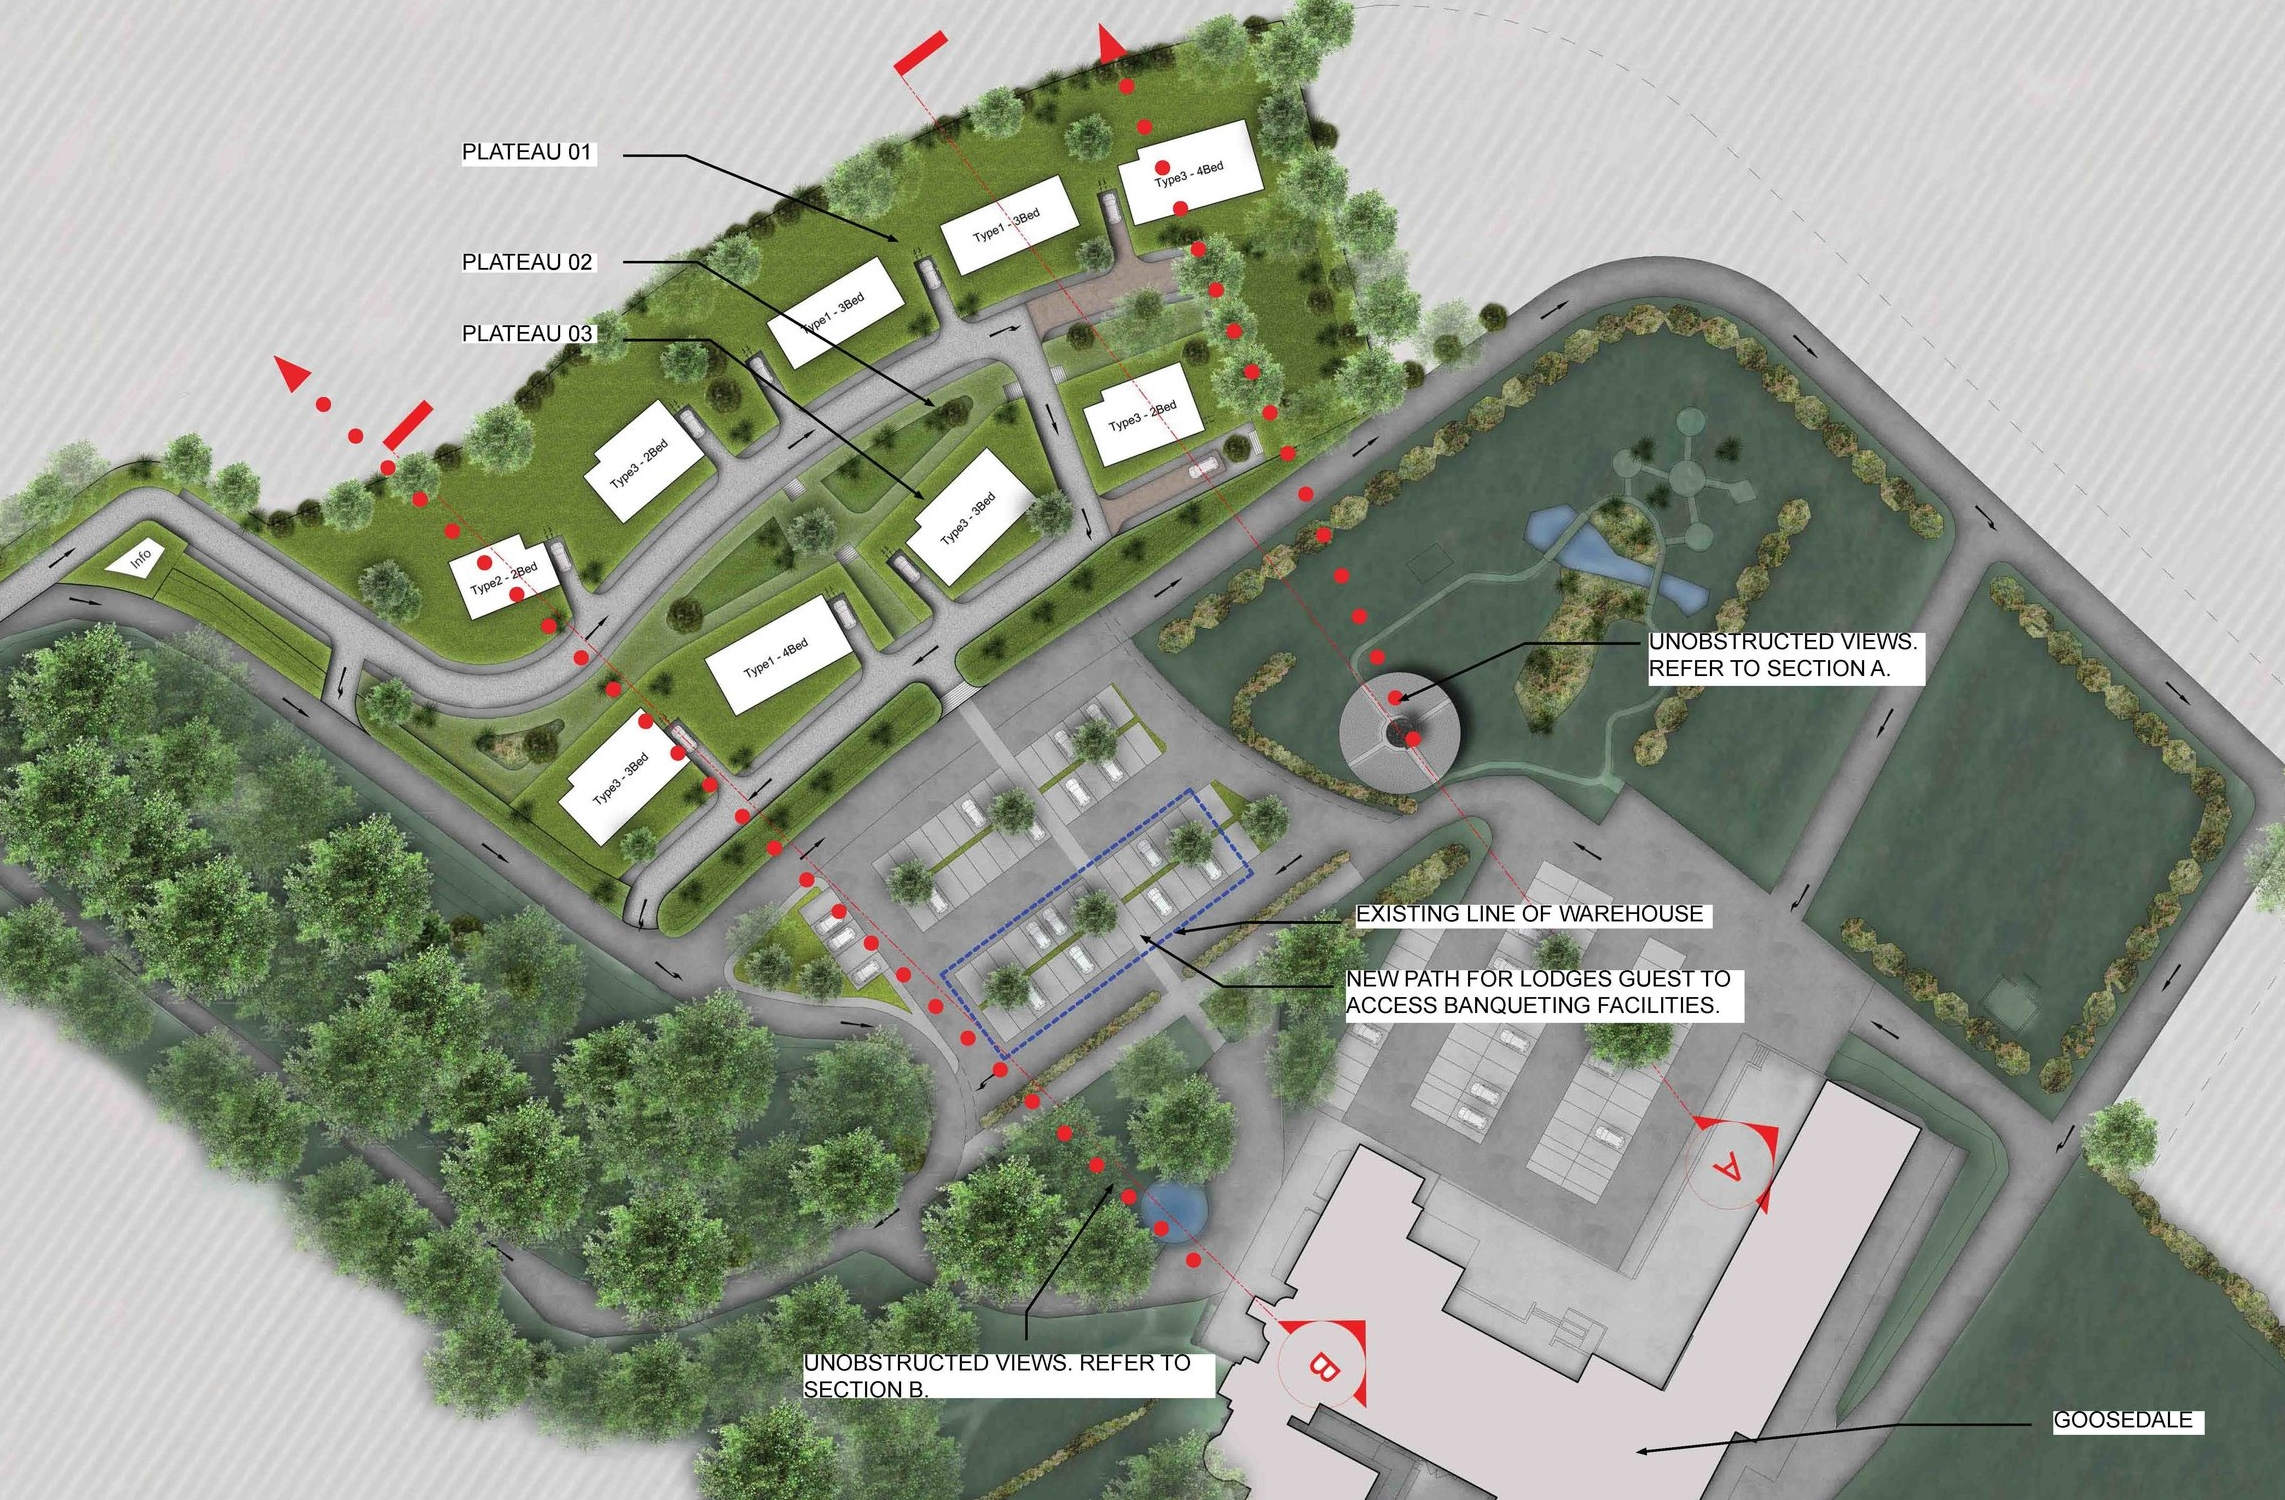 2016 03 16 SITE PLAN (LOW RES).jpg